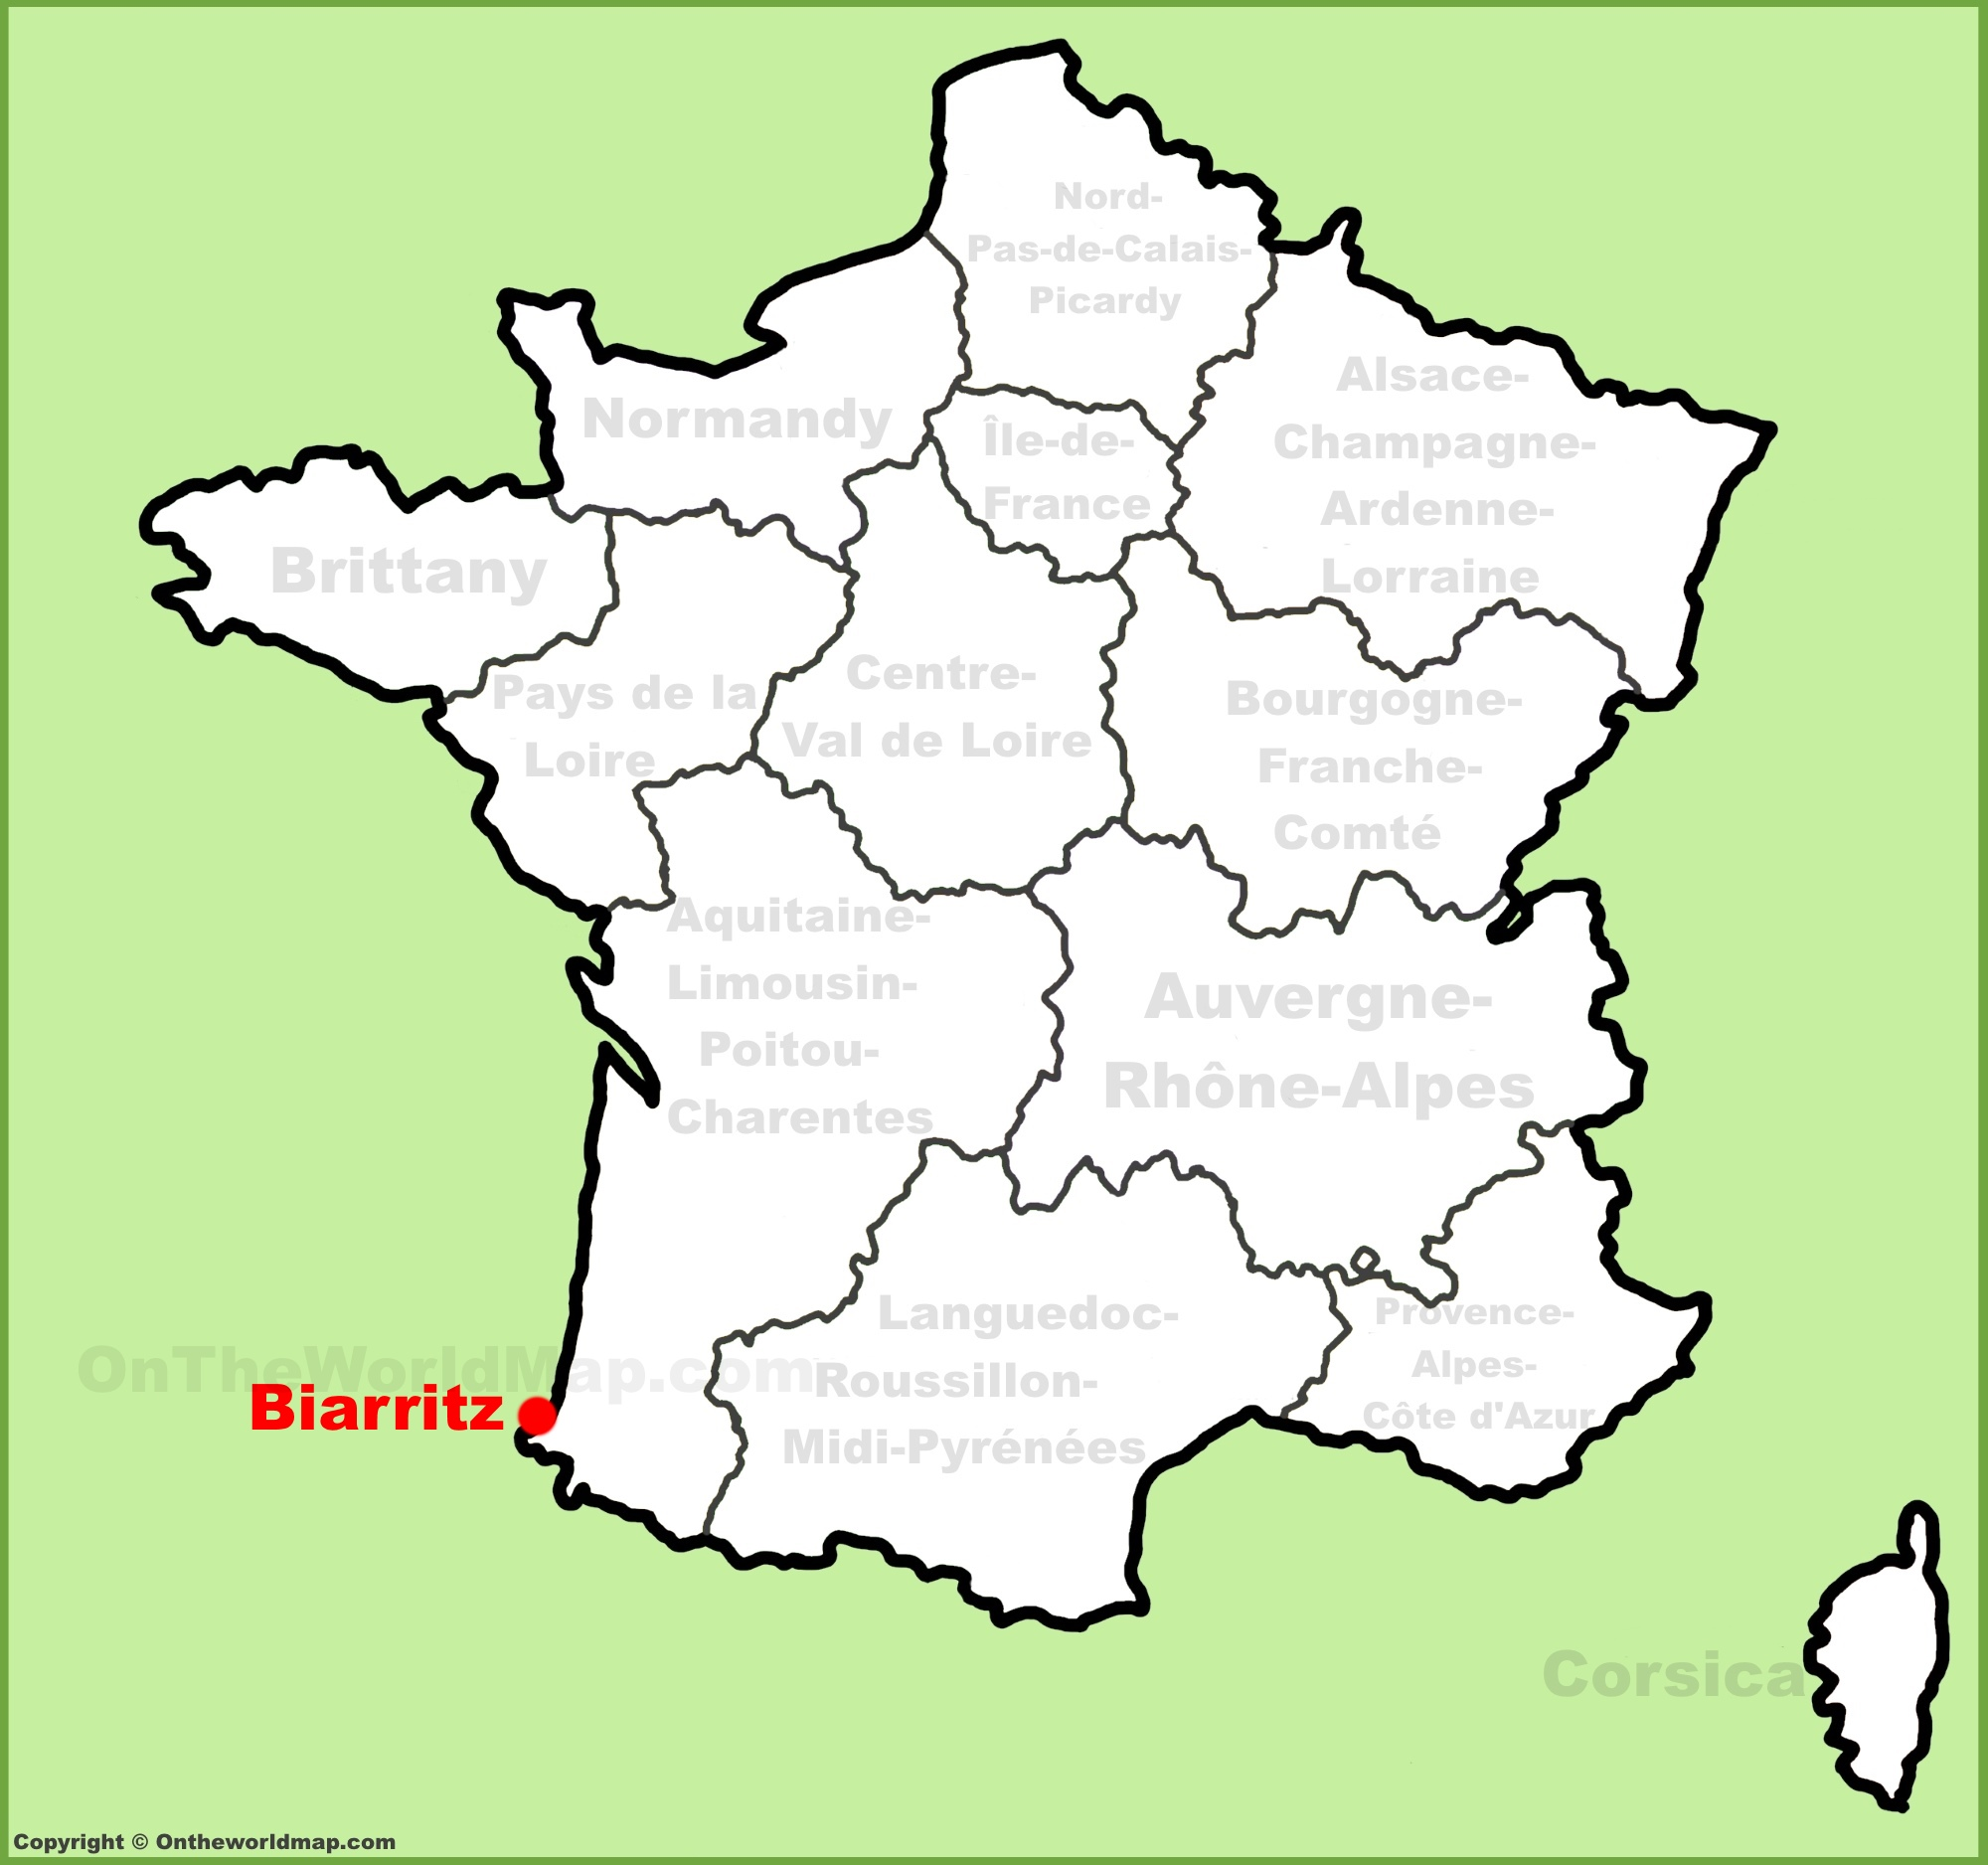 Biarritz location on the France map